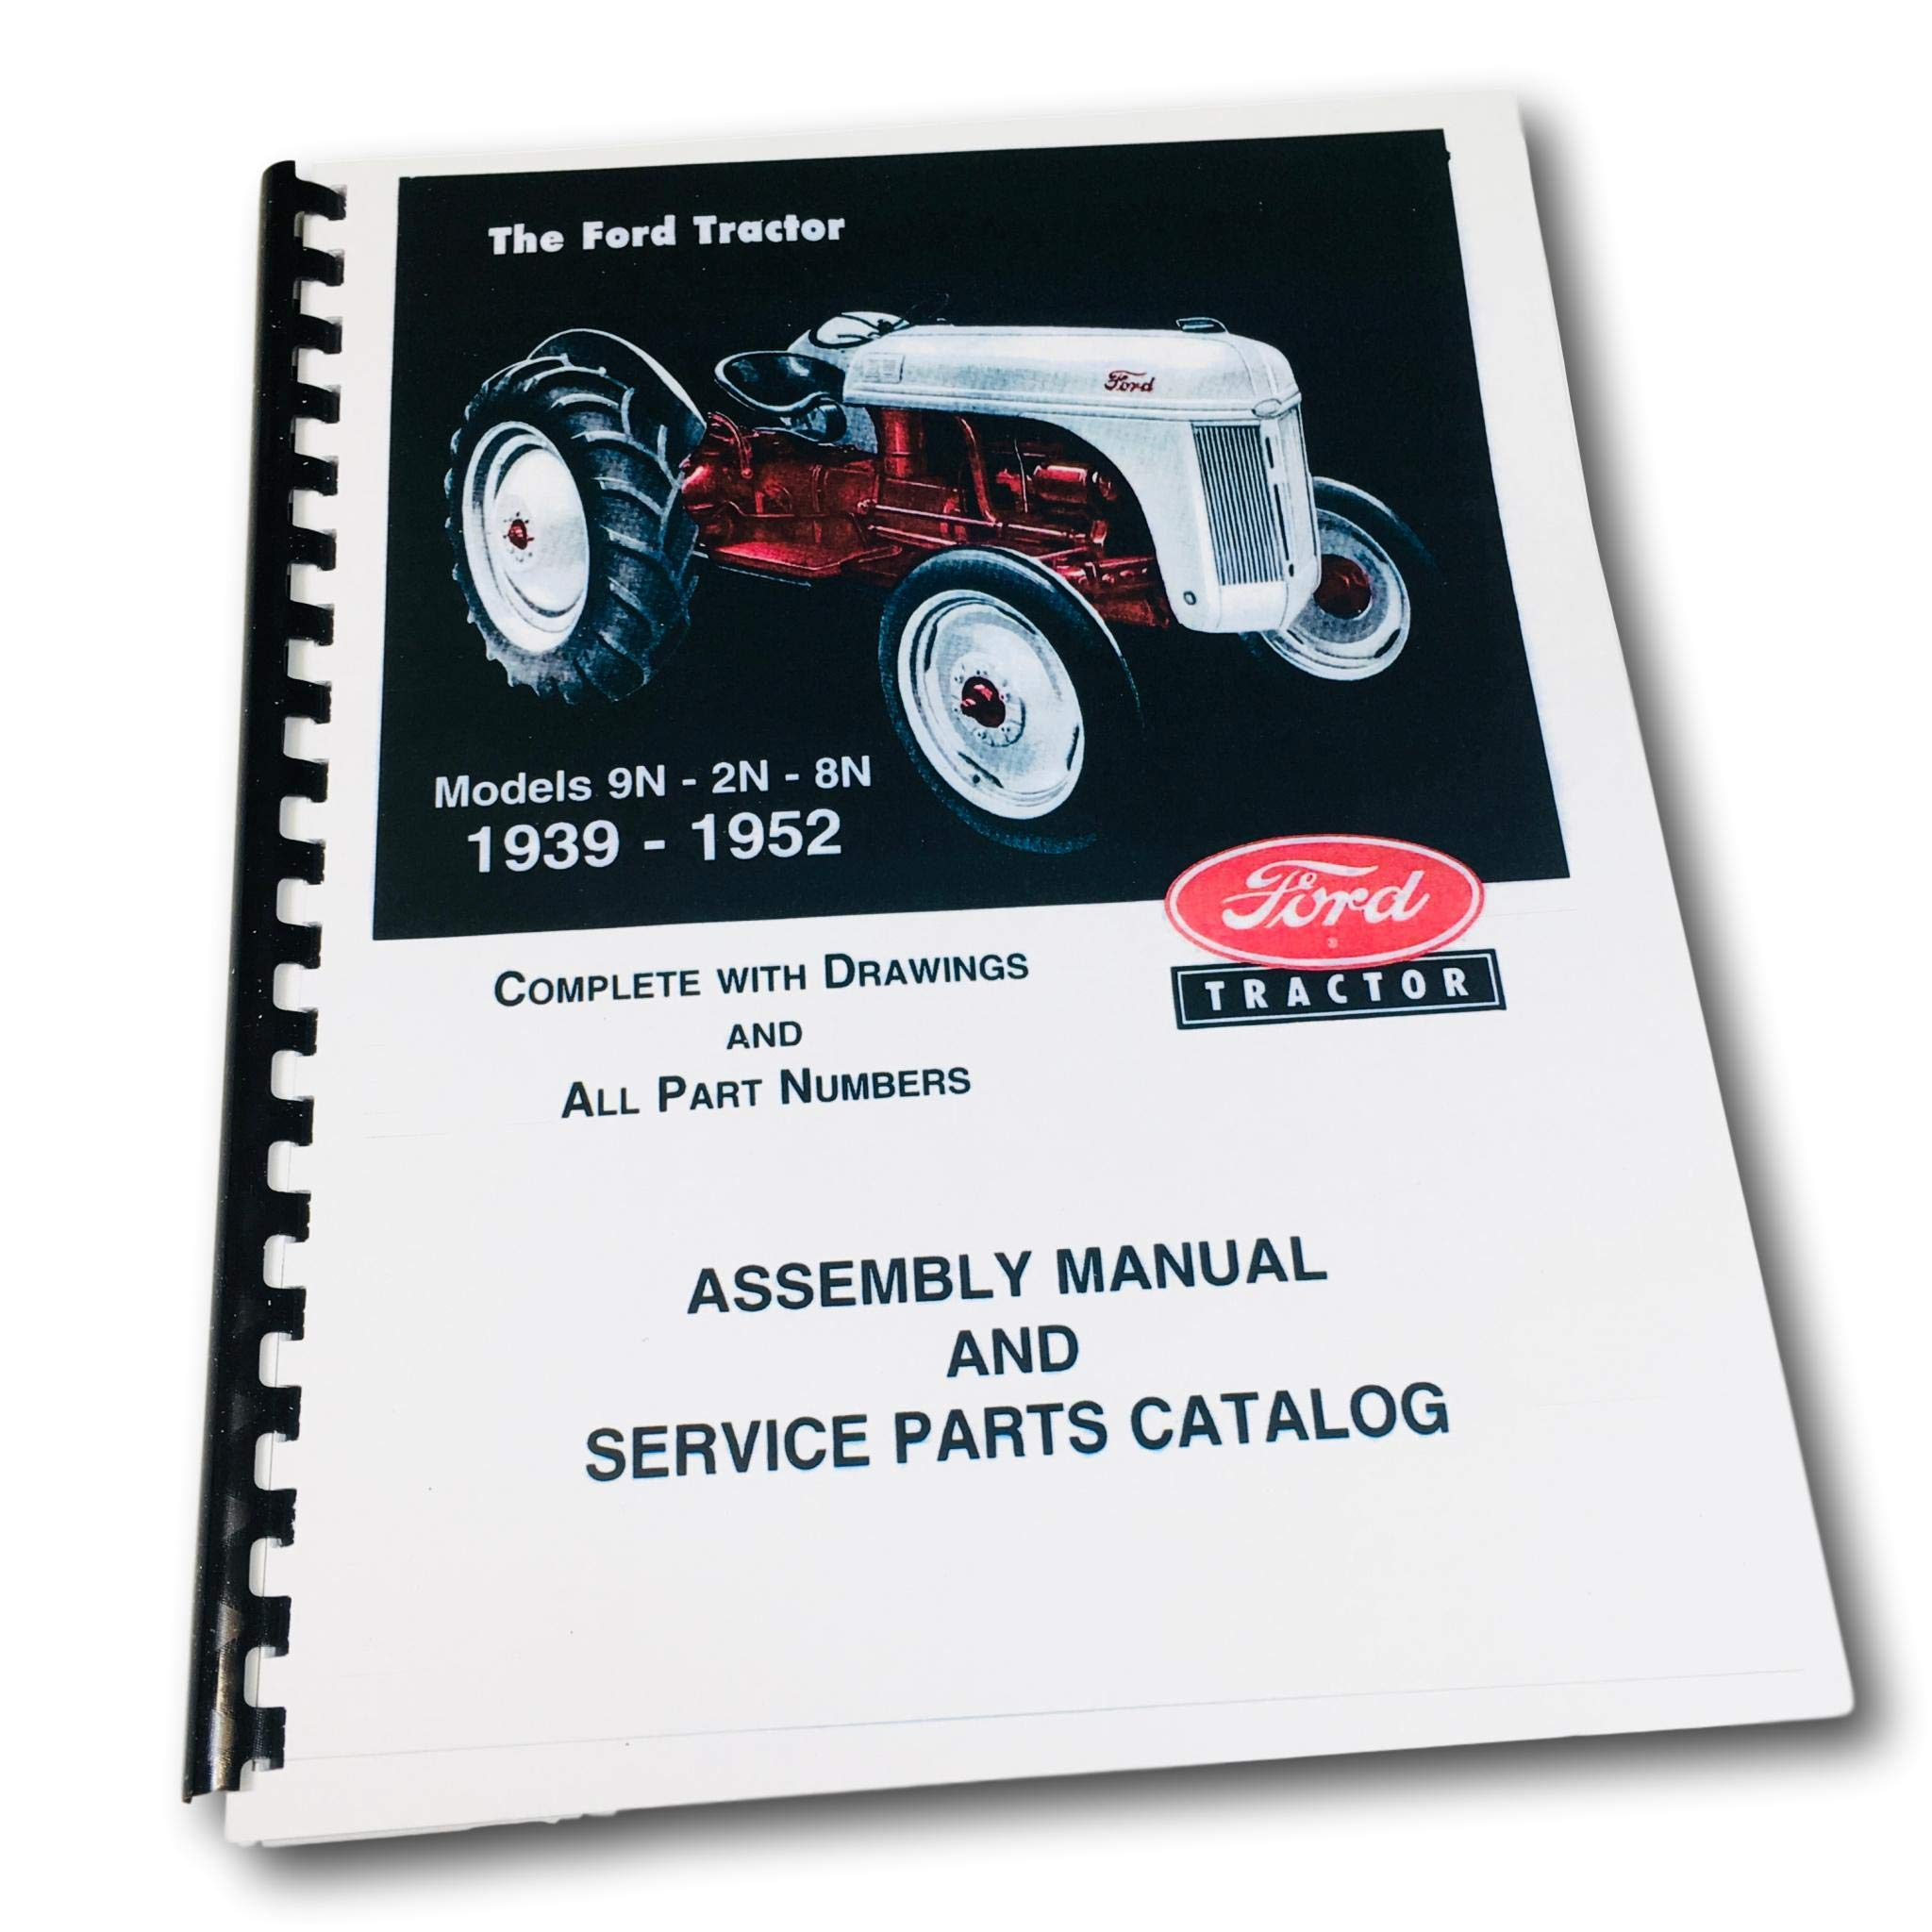 FORD 2N, 8N, 9N FARM TRACTOR FACTORY PARTS CATALOG & ASSEMBLY MANUAL - 1939  1940 1941 1942 1946 1947 1948 1949 1950 1951 1952: FORD MOTORS TRACTOR 2N  8N 9N: ...